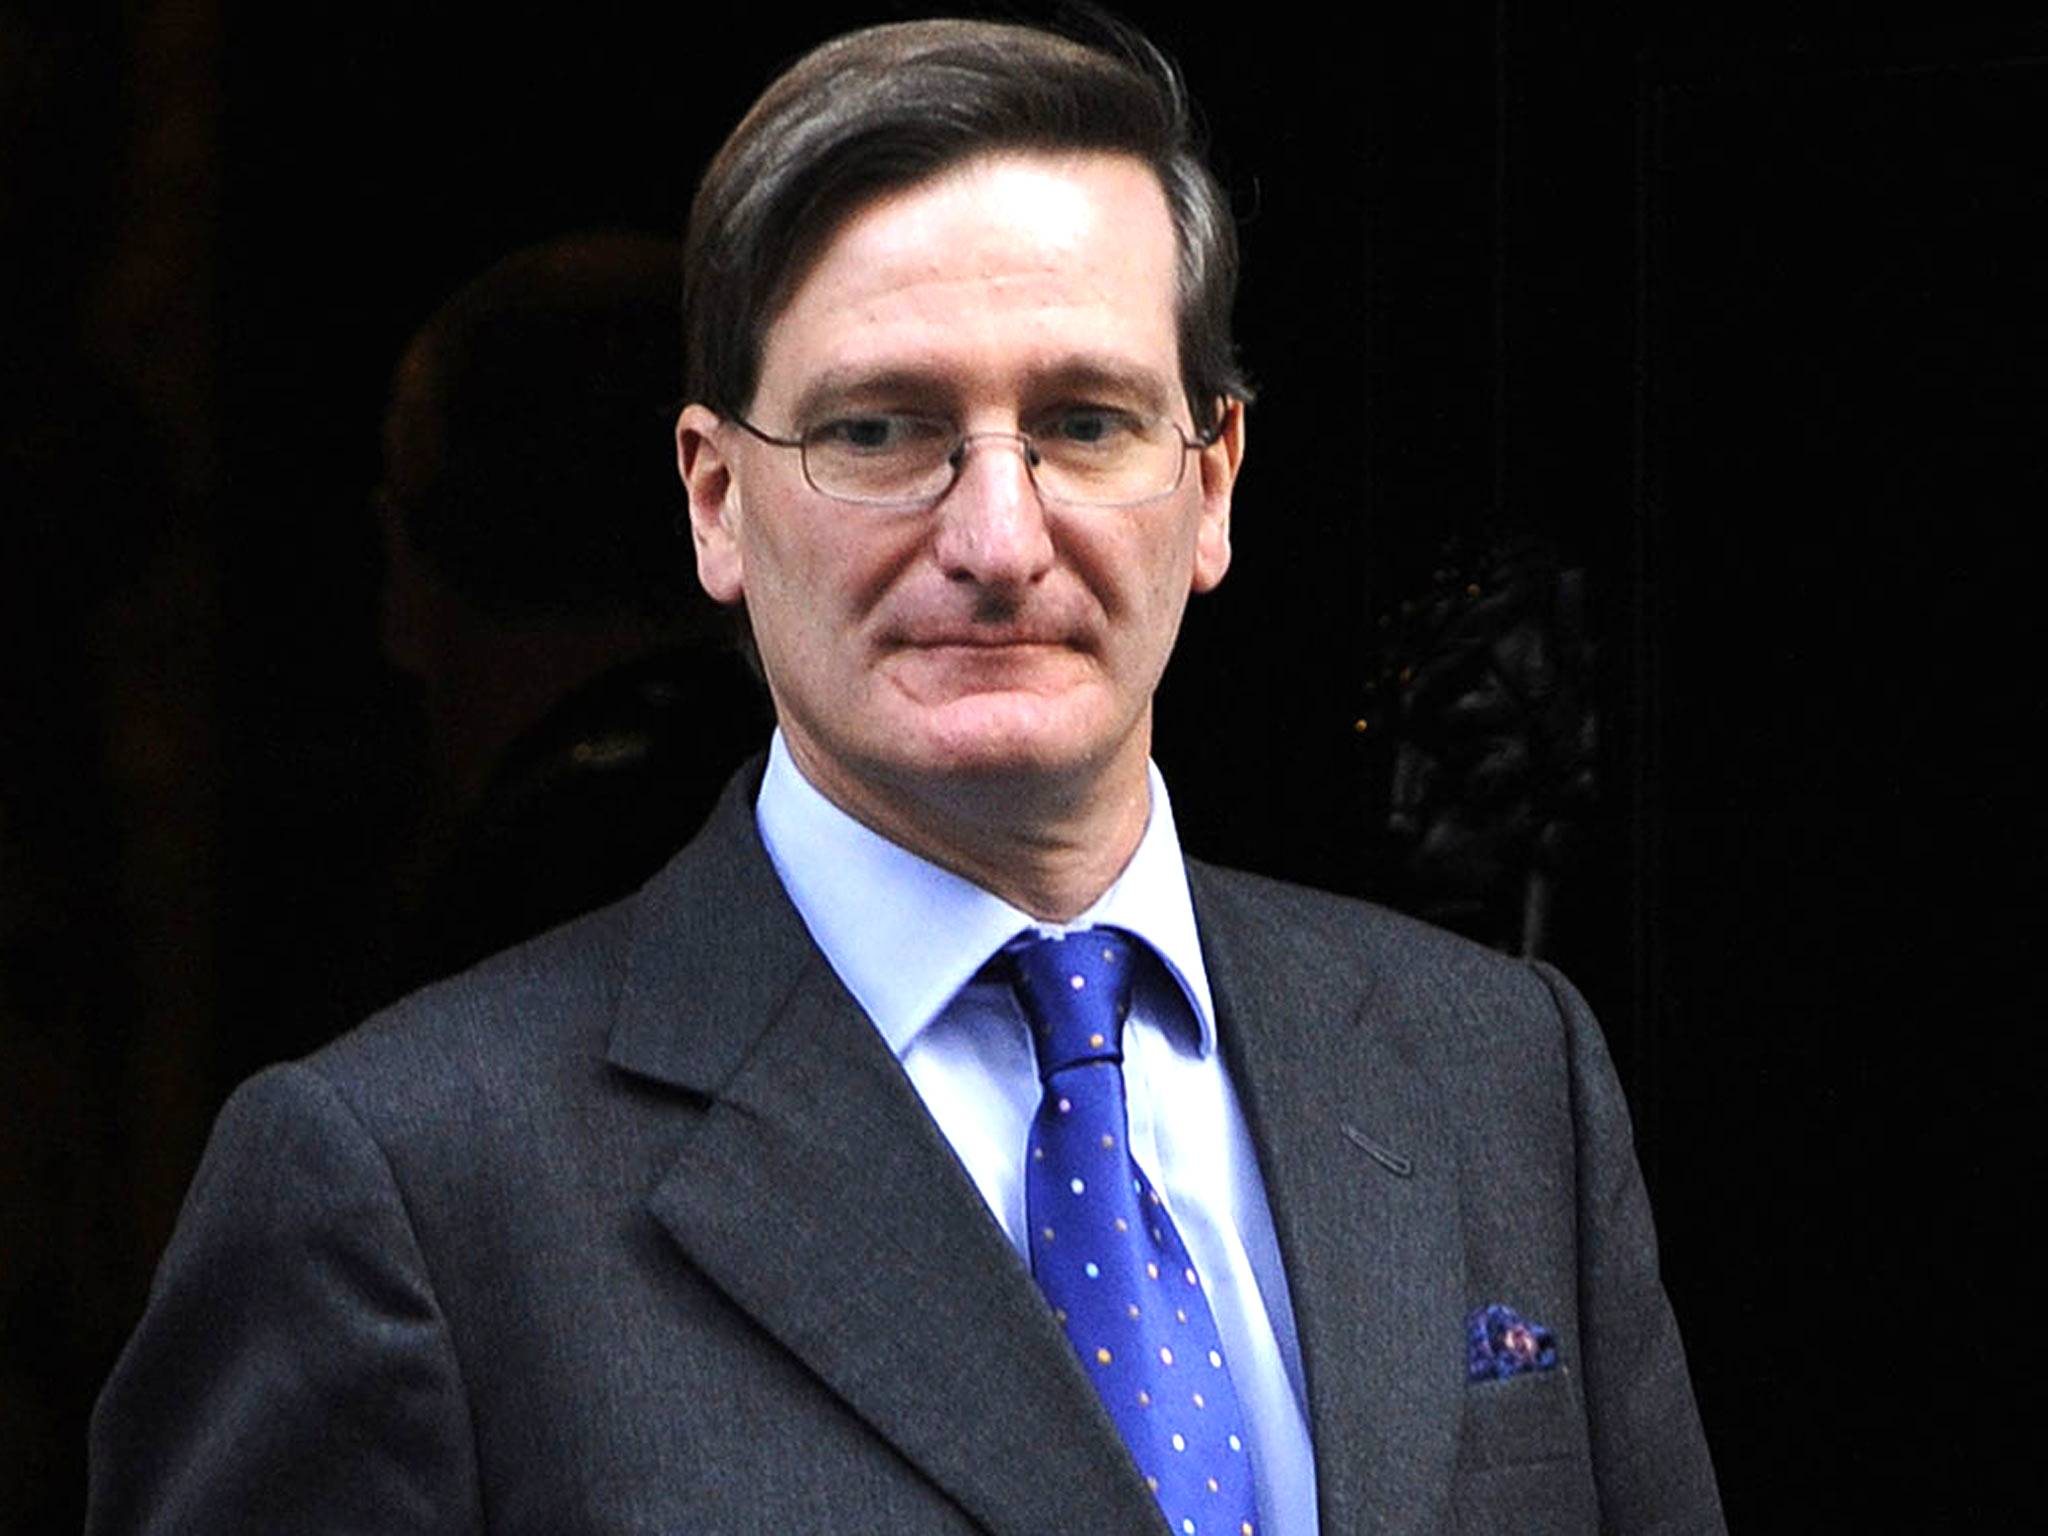 dominic grieve - photo #12